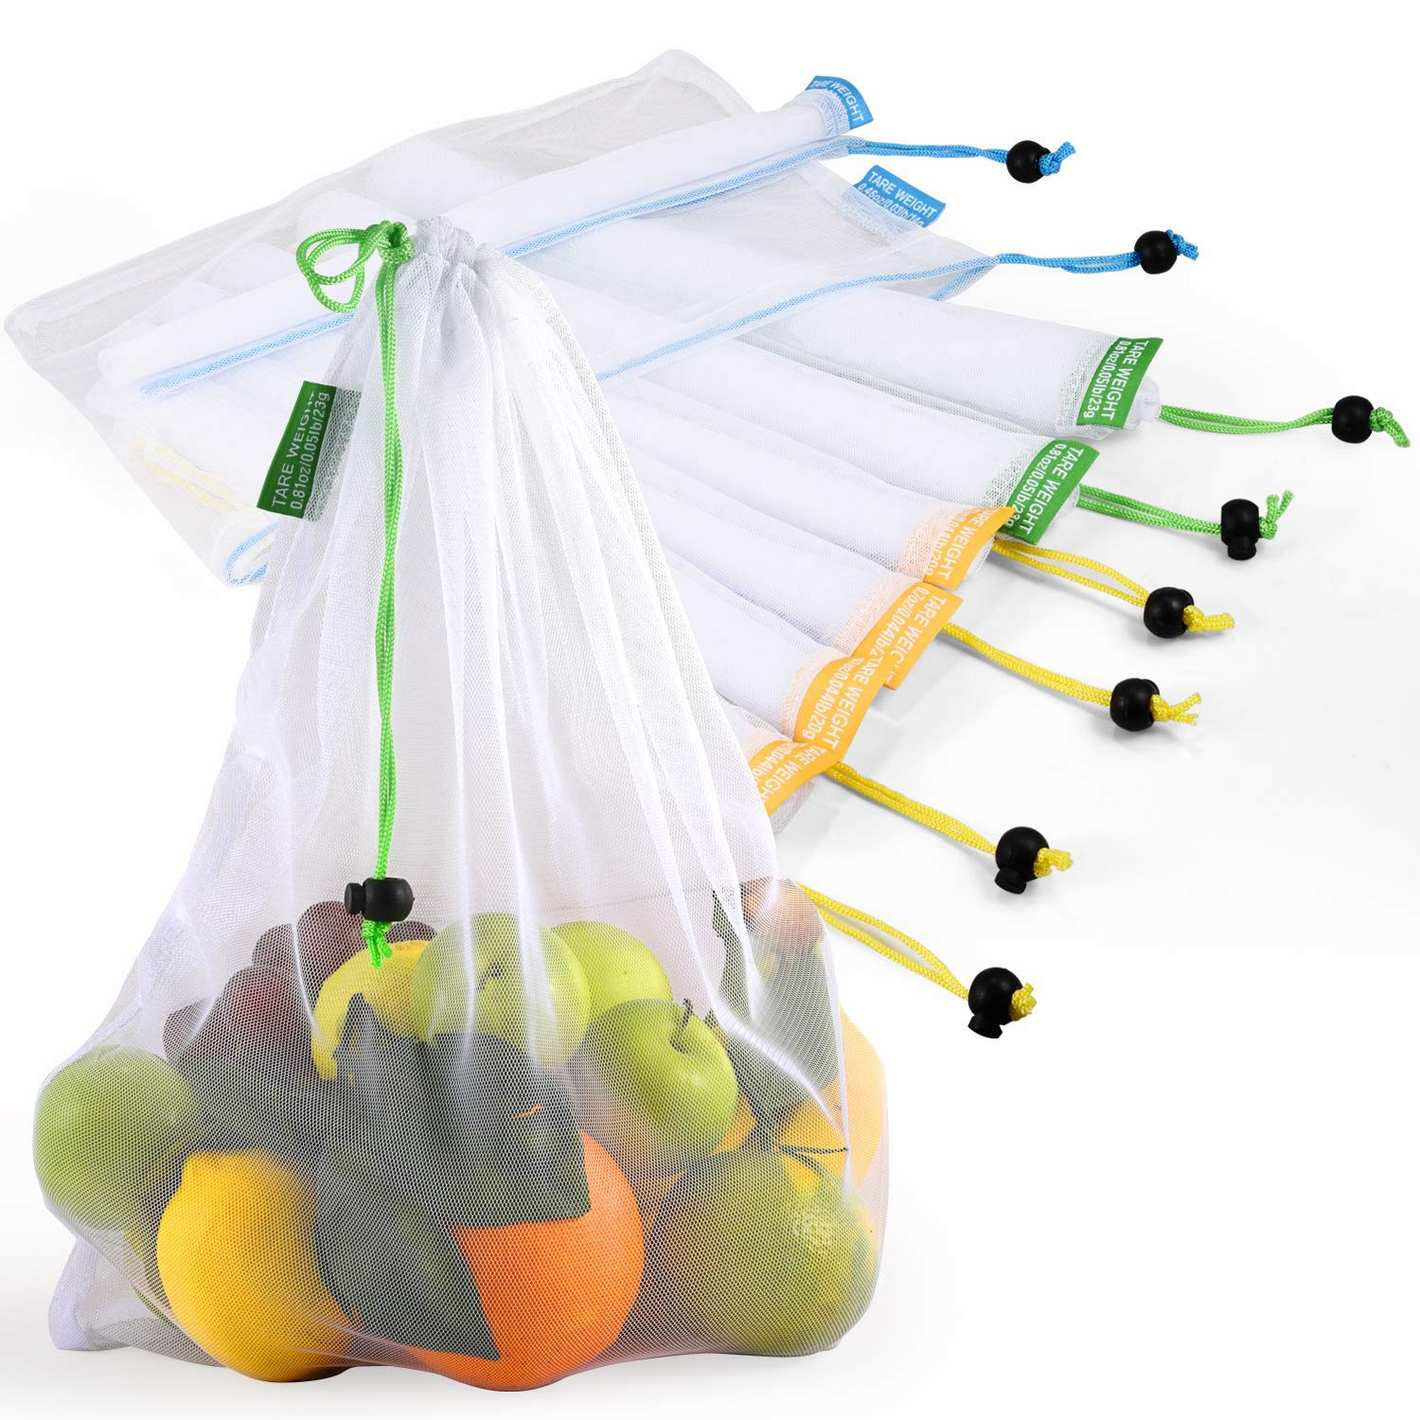 Reusable Produce Bags, Lavinrose Reusable Mesh Produce Bags with Drawstring & Tare Weight Tags